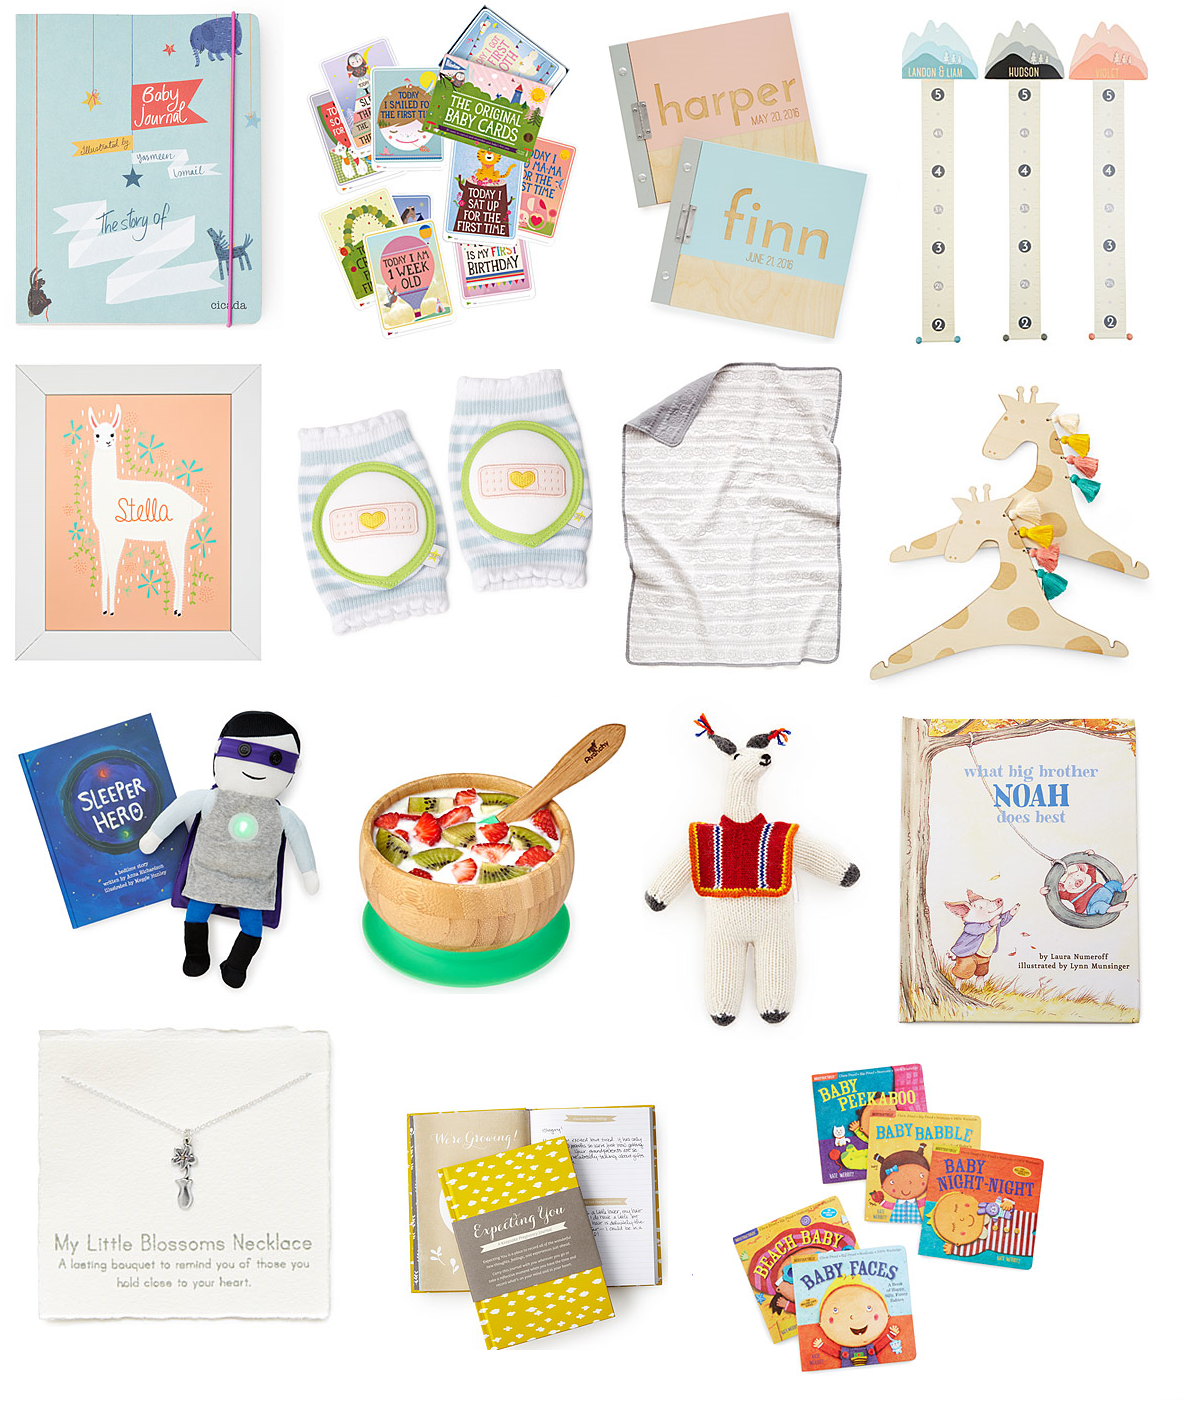 Made with Love | Personalised Gifts from UnCommonGoods.com #AD